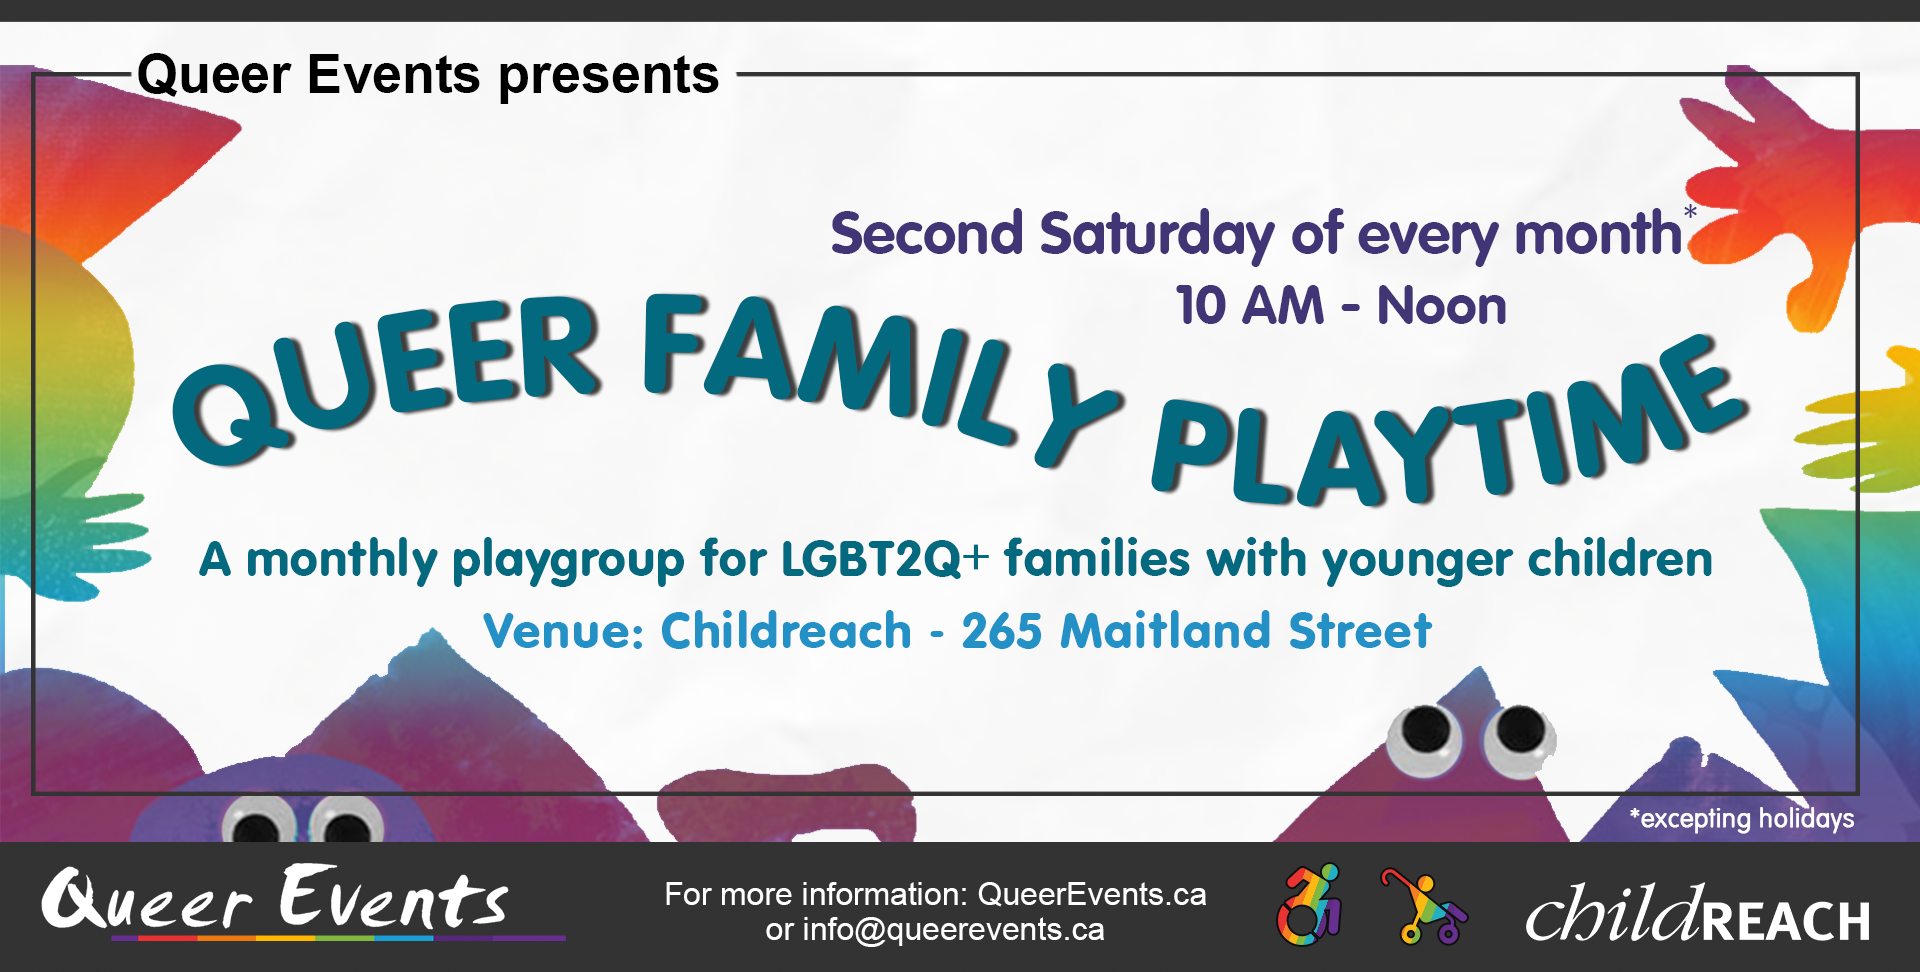 QueerEvents.ca - London event listing - Queer family playtime